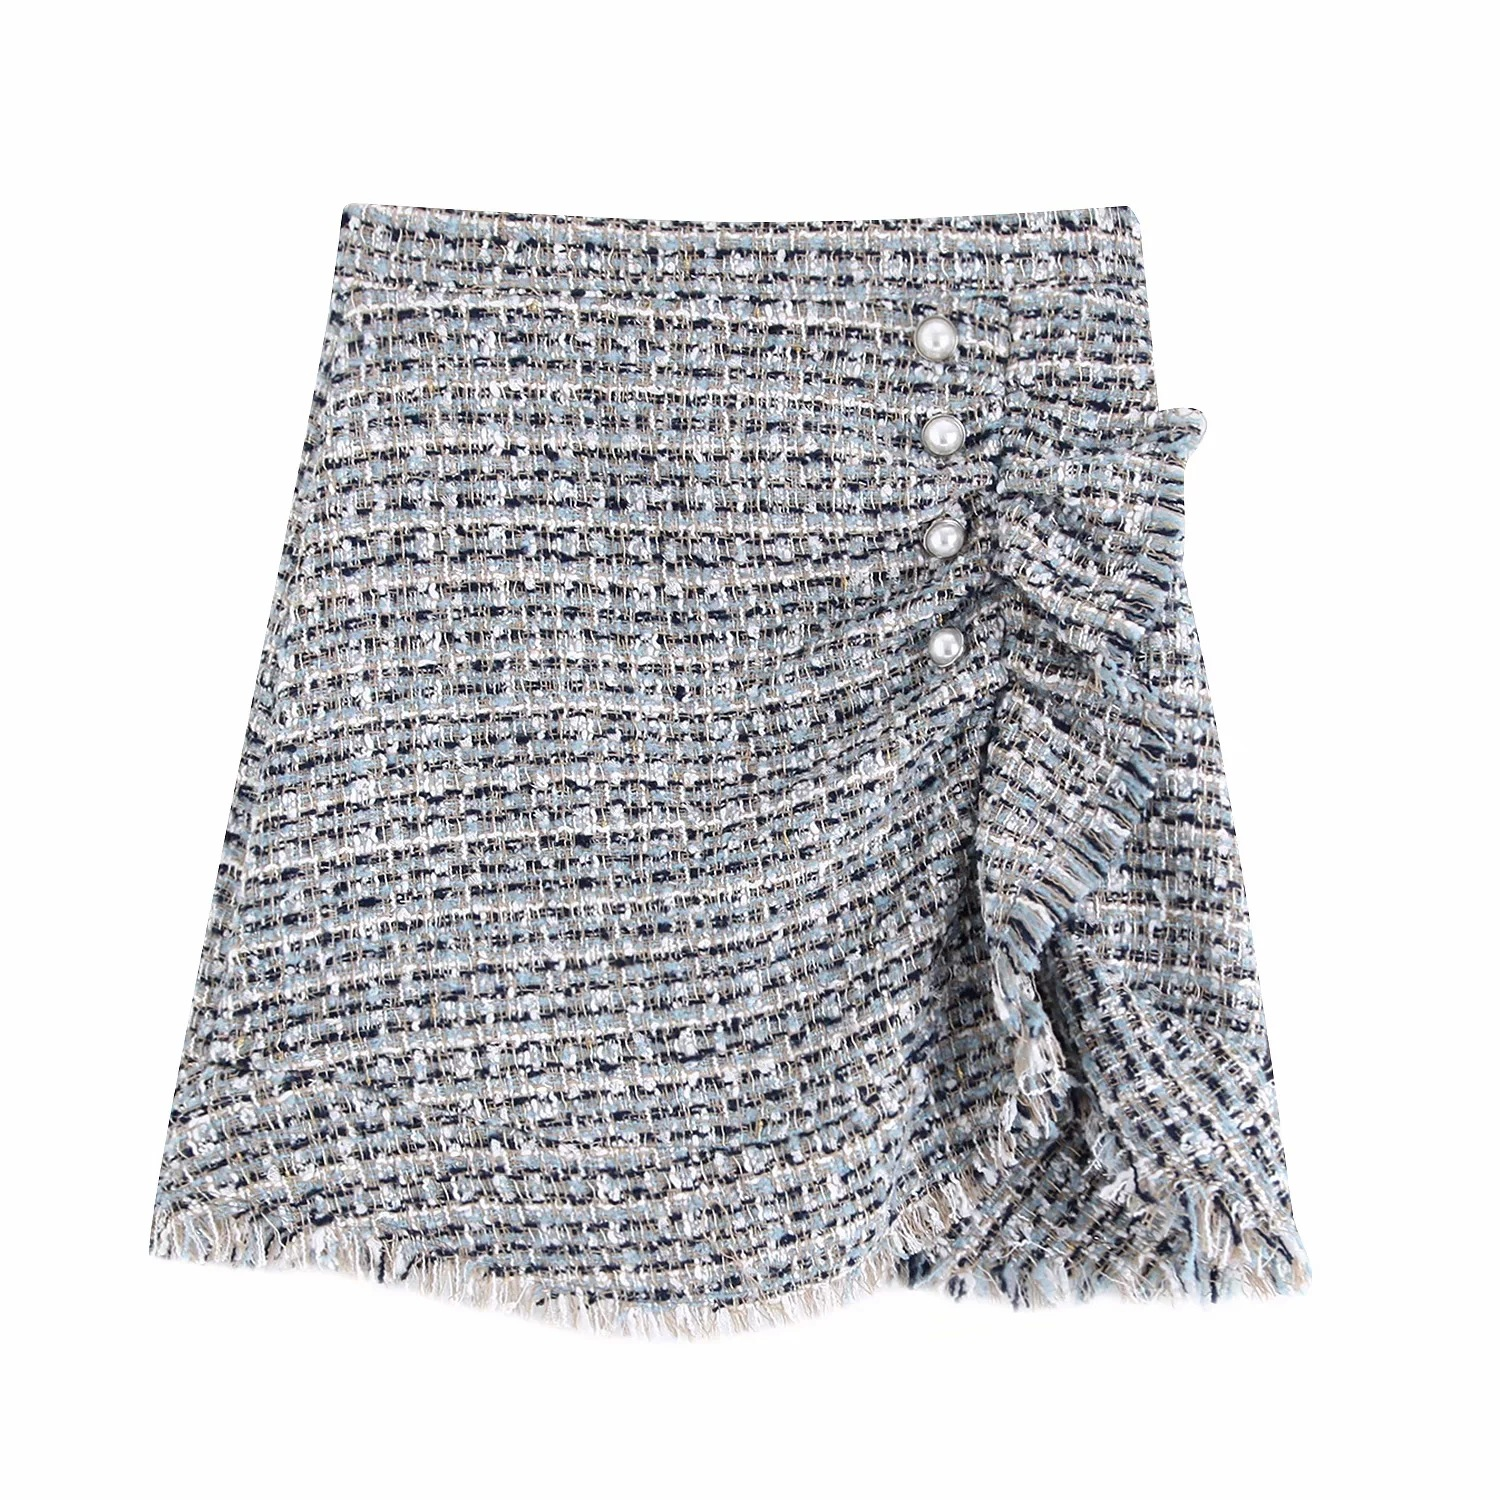 Cbb-9699 WOMEN'S Dress New Products Pearl Buttons Tweed Skirt